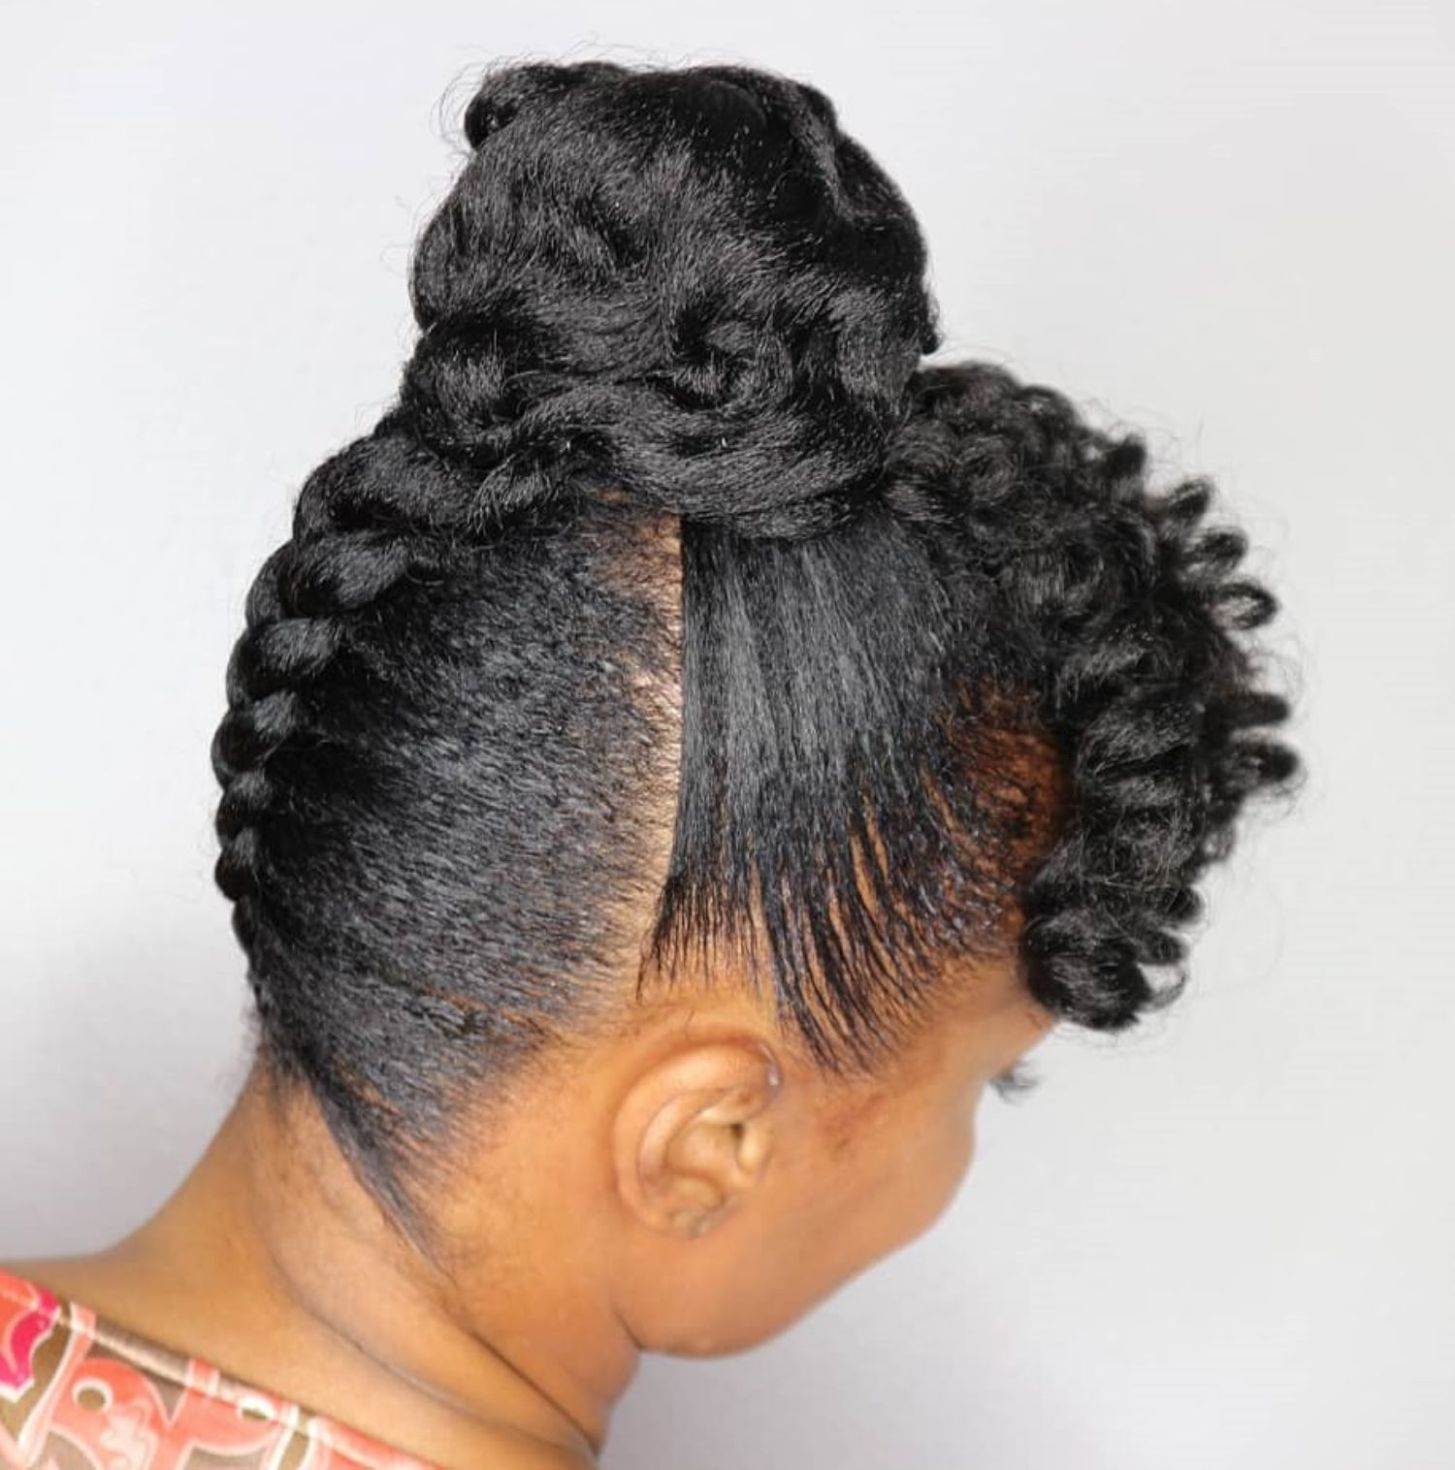 60 Easy And Showy Protective Hairstyles For Natural Hair Natural Hair Styles Protective Hairstyles For Natural Hair Protective Hairstyles